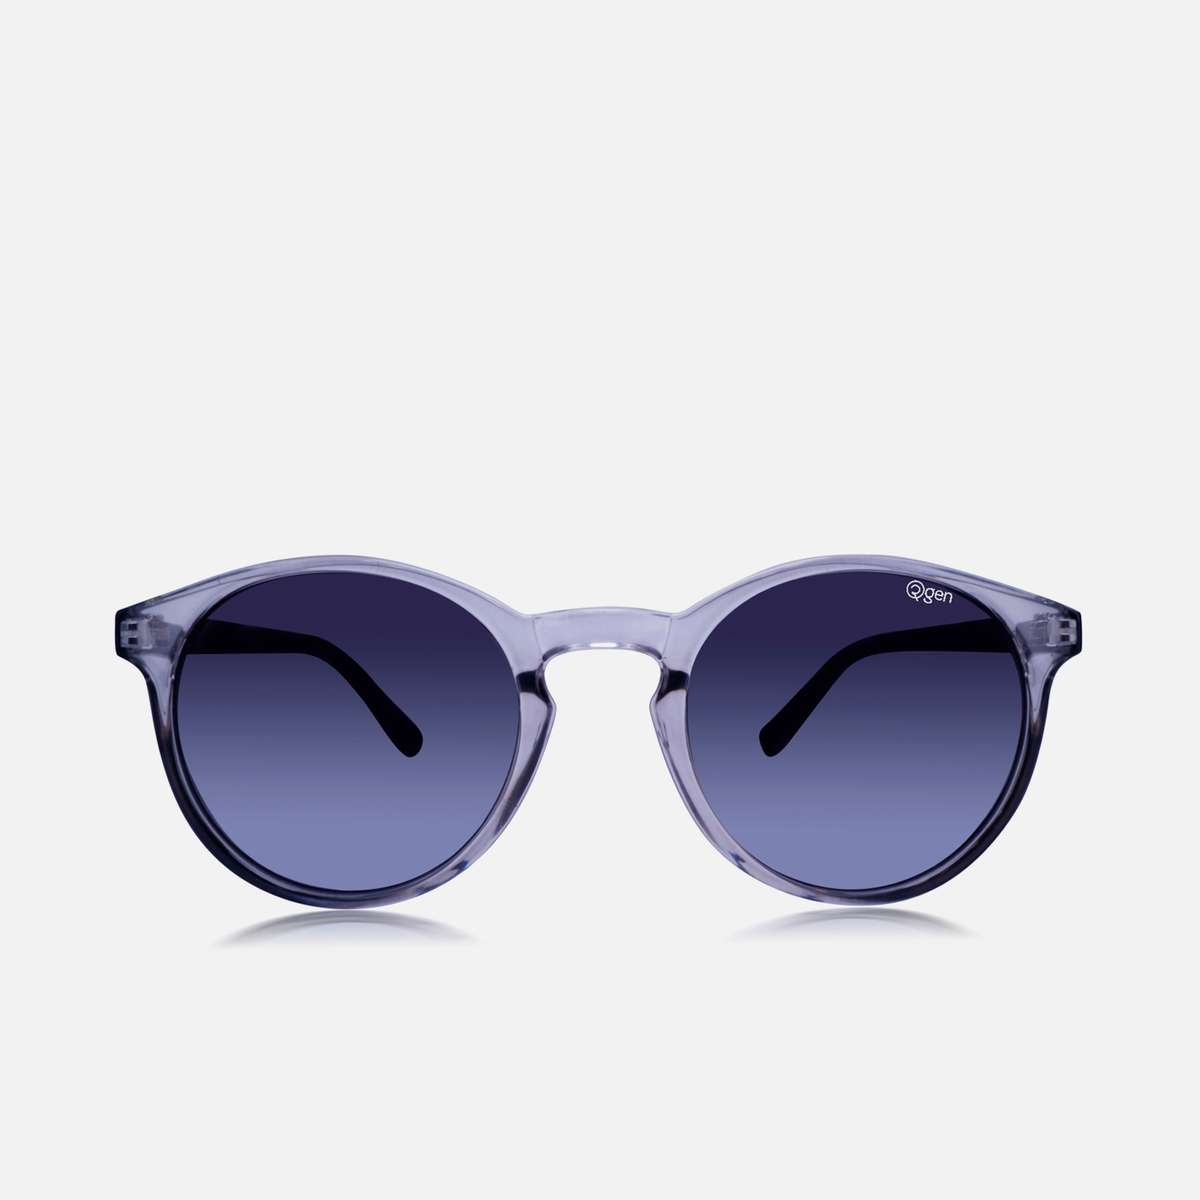 https://www.circlemag.in/o2gen-sunglasses-looks/4.Women Solid Round Sunglasses - O2-21-012-C4